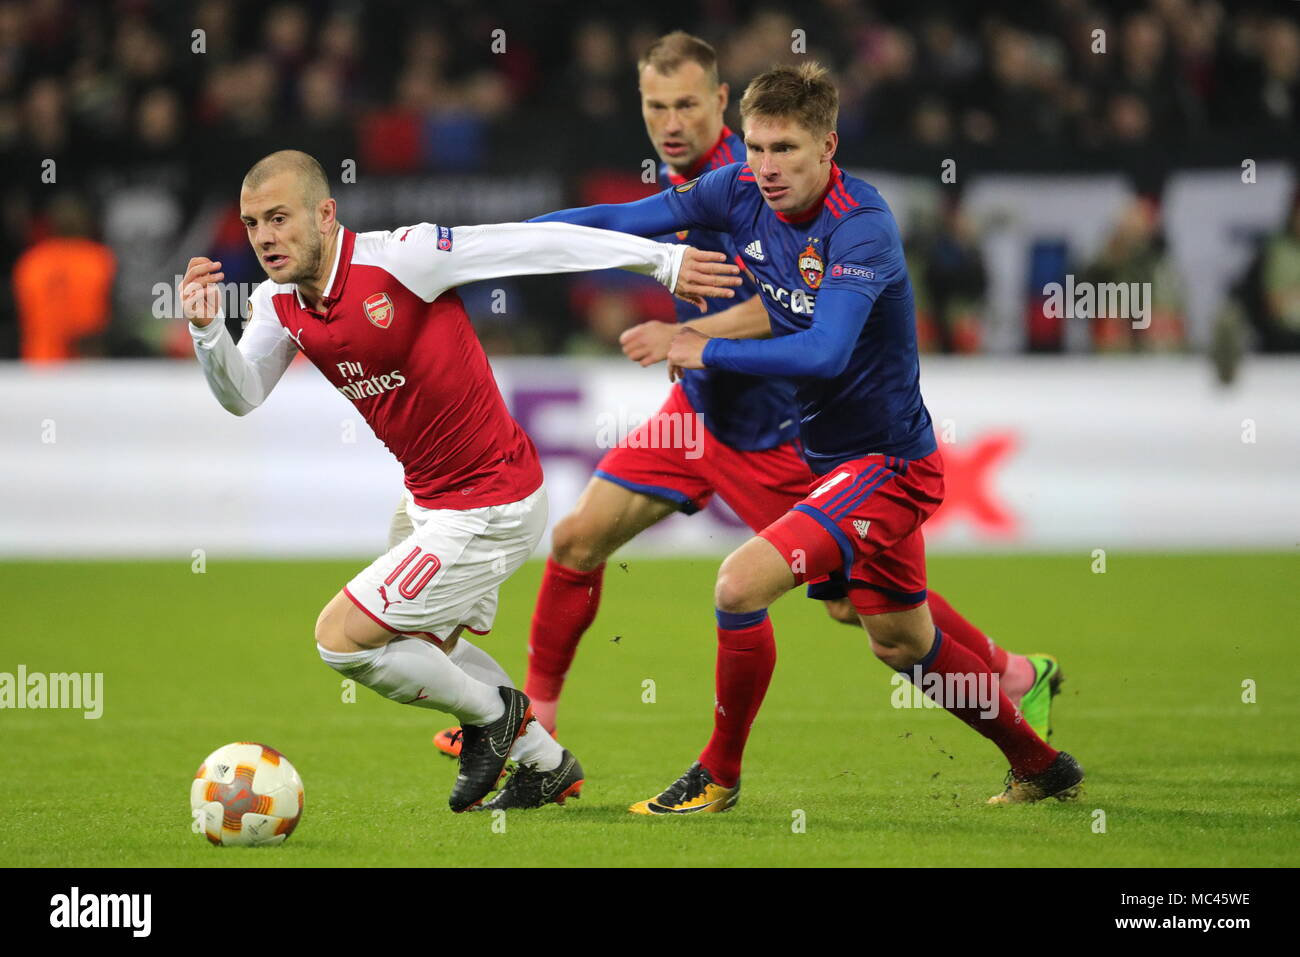 Moscow, Russia. 12th Apr, 2018. MOSCOW, RUSSIA - APRIL 12, 2018: Arsenal F.C.'s Jack Wilshere (L) and CSKA Moscow's Kirill Nababkin fight for the ball in their 2017-2018 UEFA Europa League quarterfinal second leg football match at VEB Arena (Arena CSKA). Sergei Bobylev/TASS Credit: ITAR-TASS News Agency/Alamy Live News - Stock Image